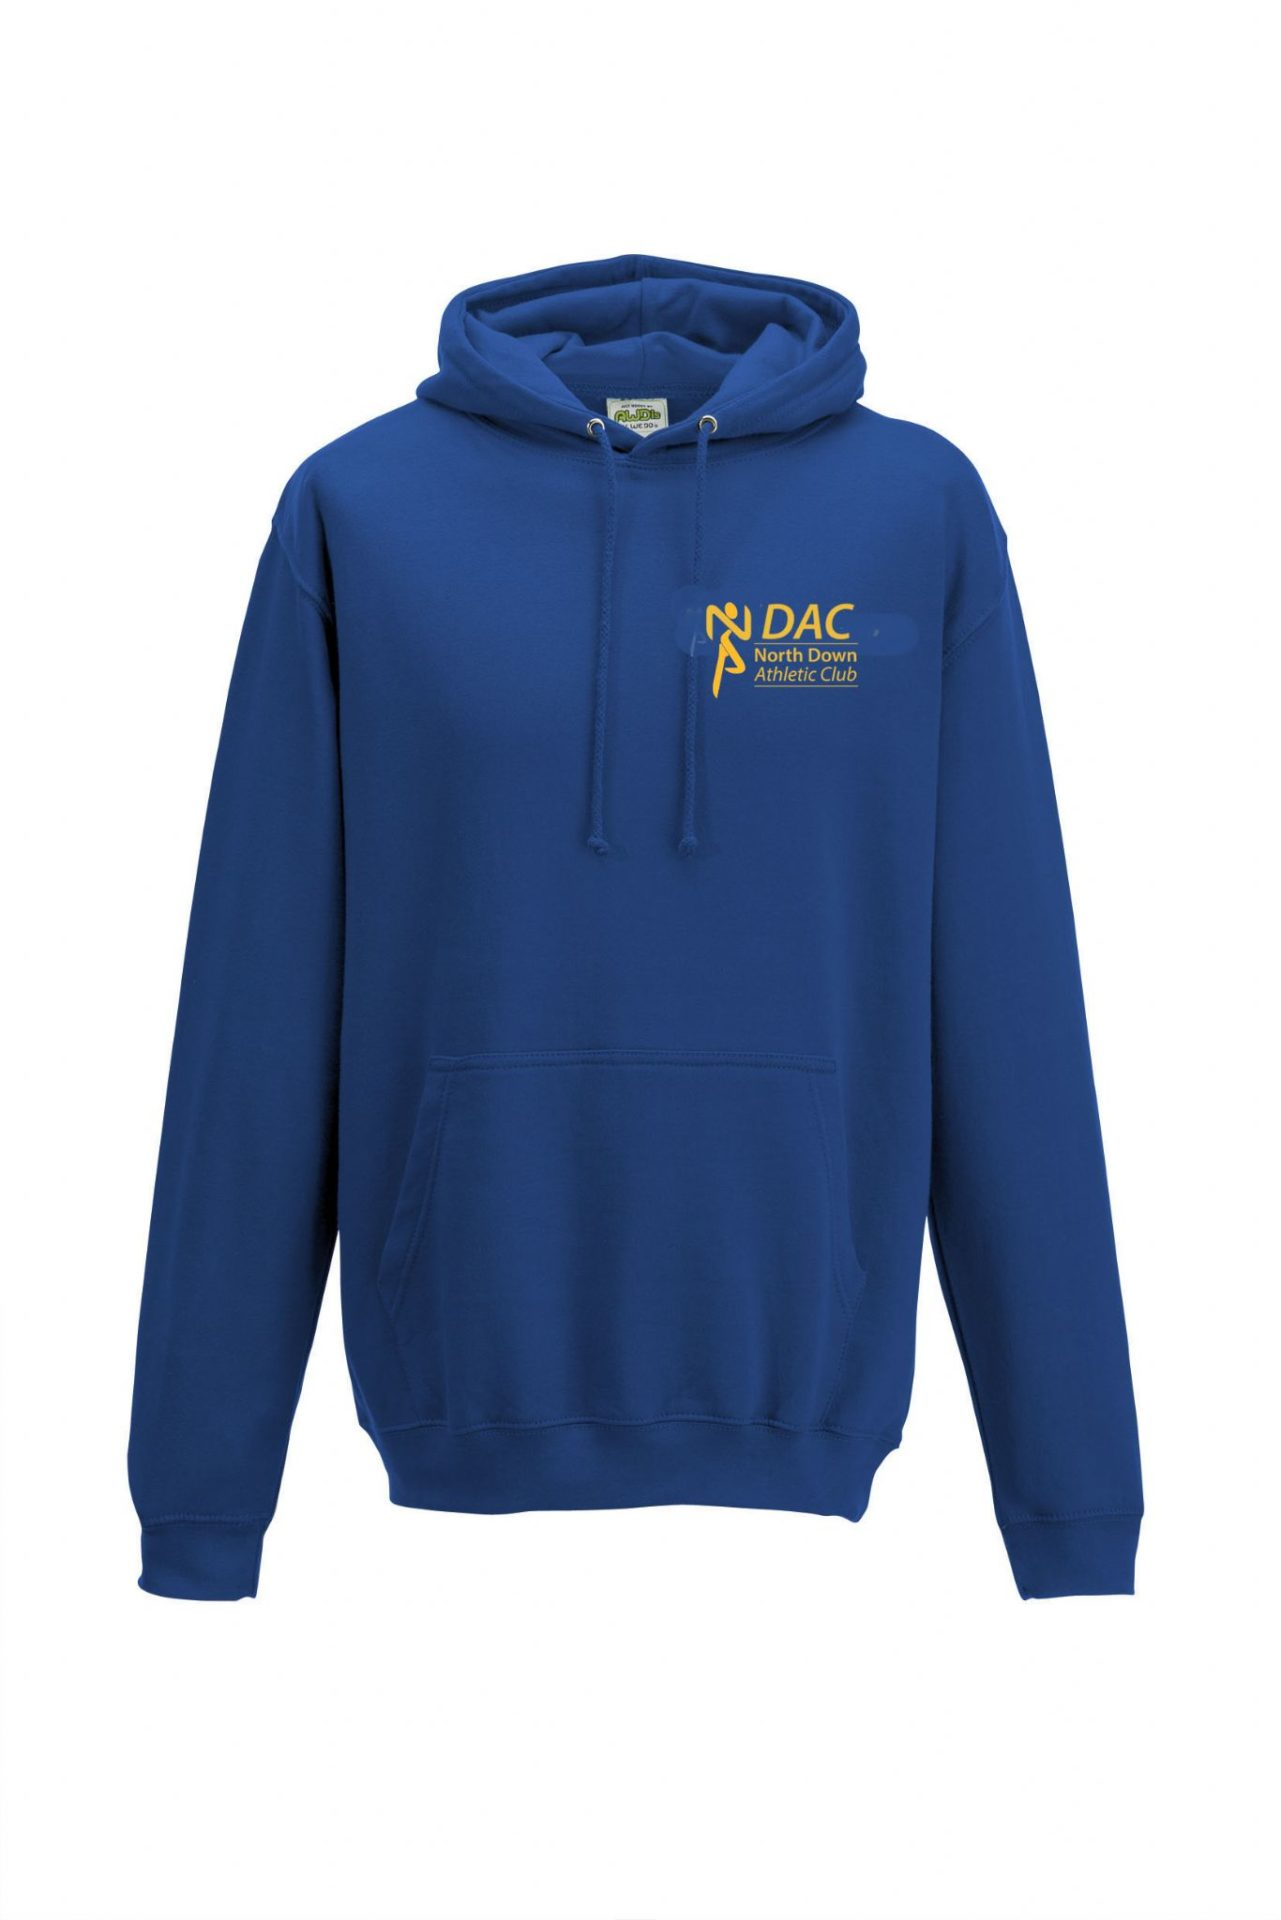 ndac hoody 21349 p scaled